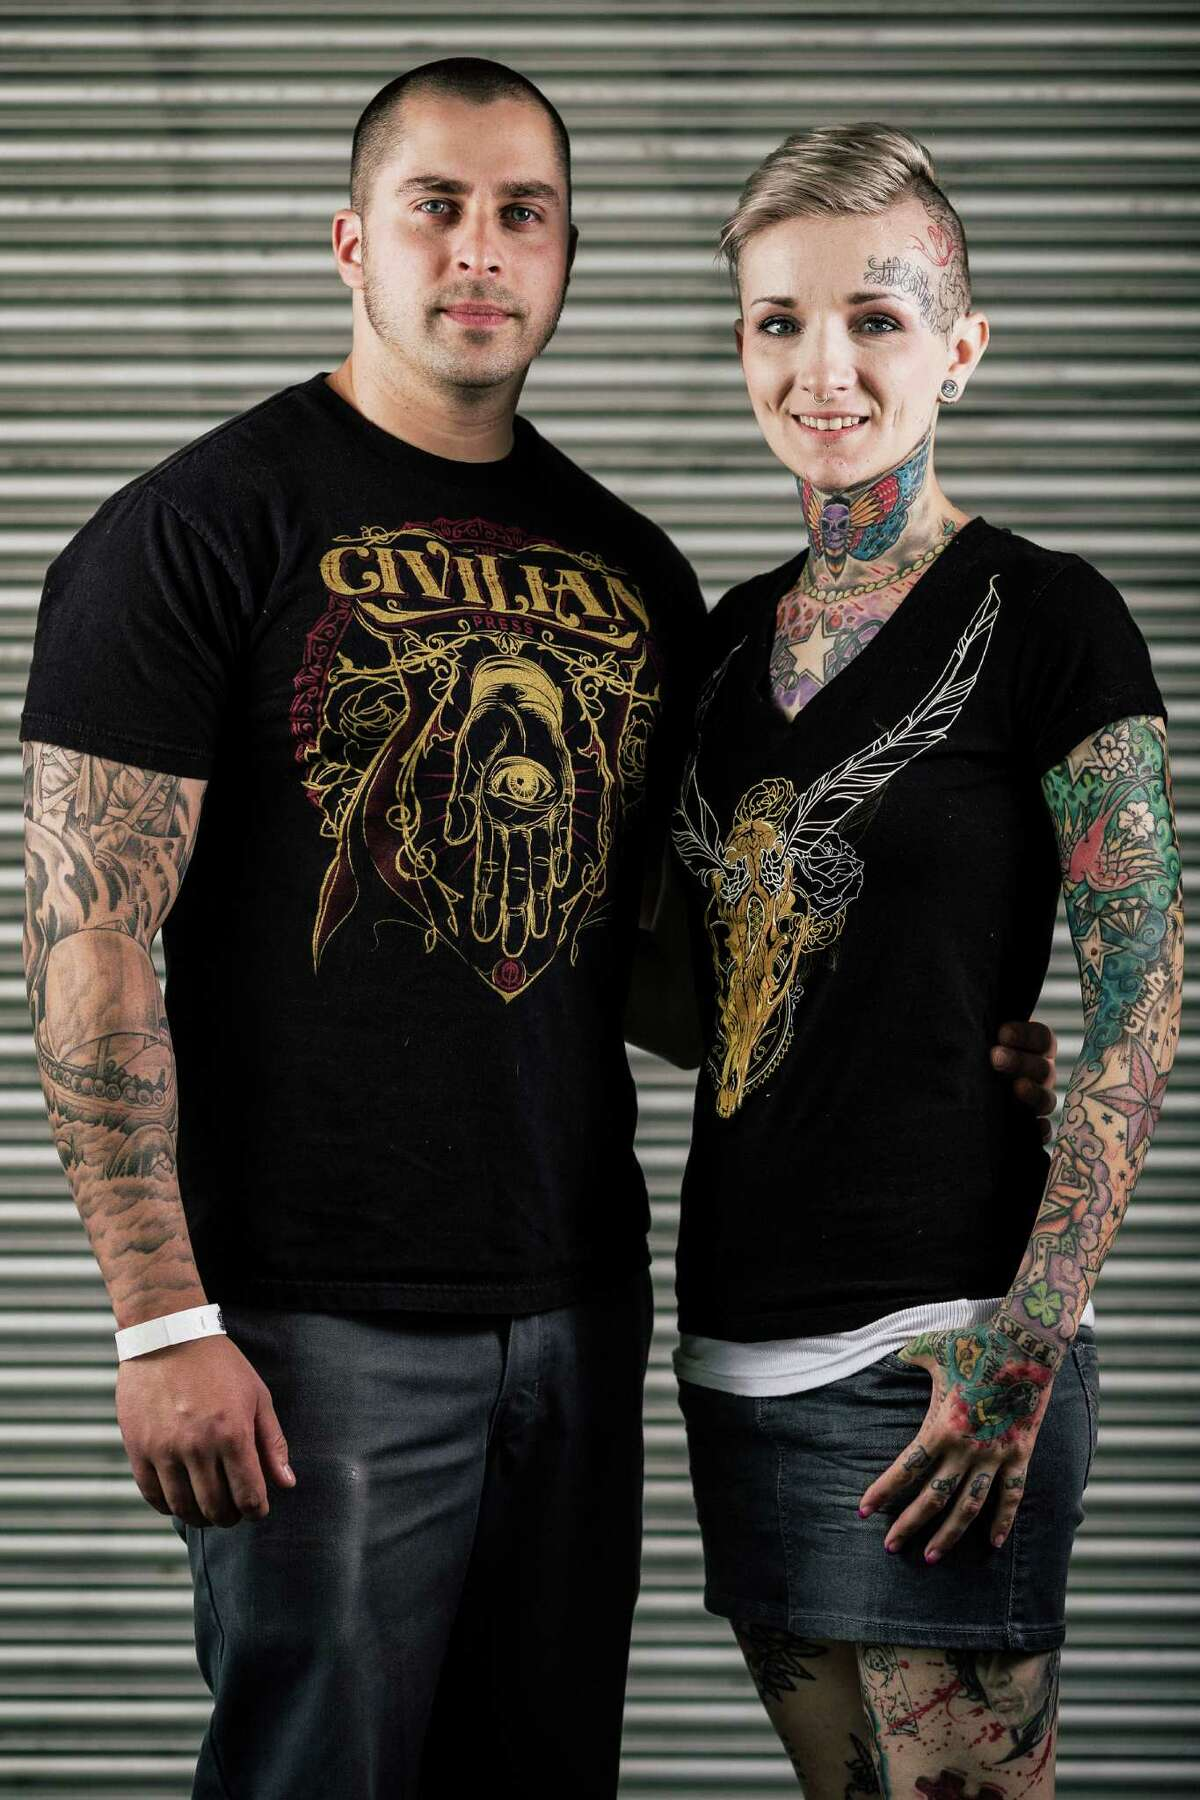 Sal Rico-Martin, left, and Amanda Midland, right, show off their ink during the first of three days of the Seattle Tattoo Expo Friday, August 9, 2013, at the Seattle Center in Seattle.